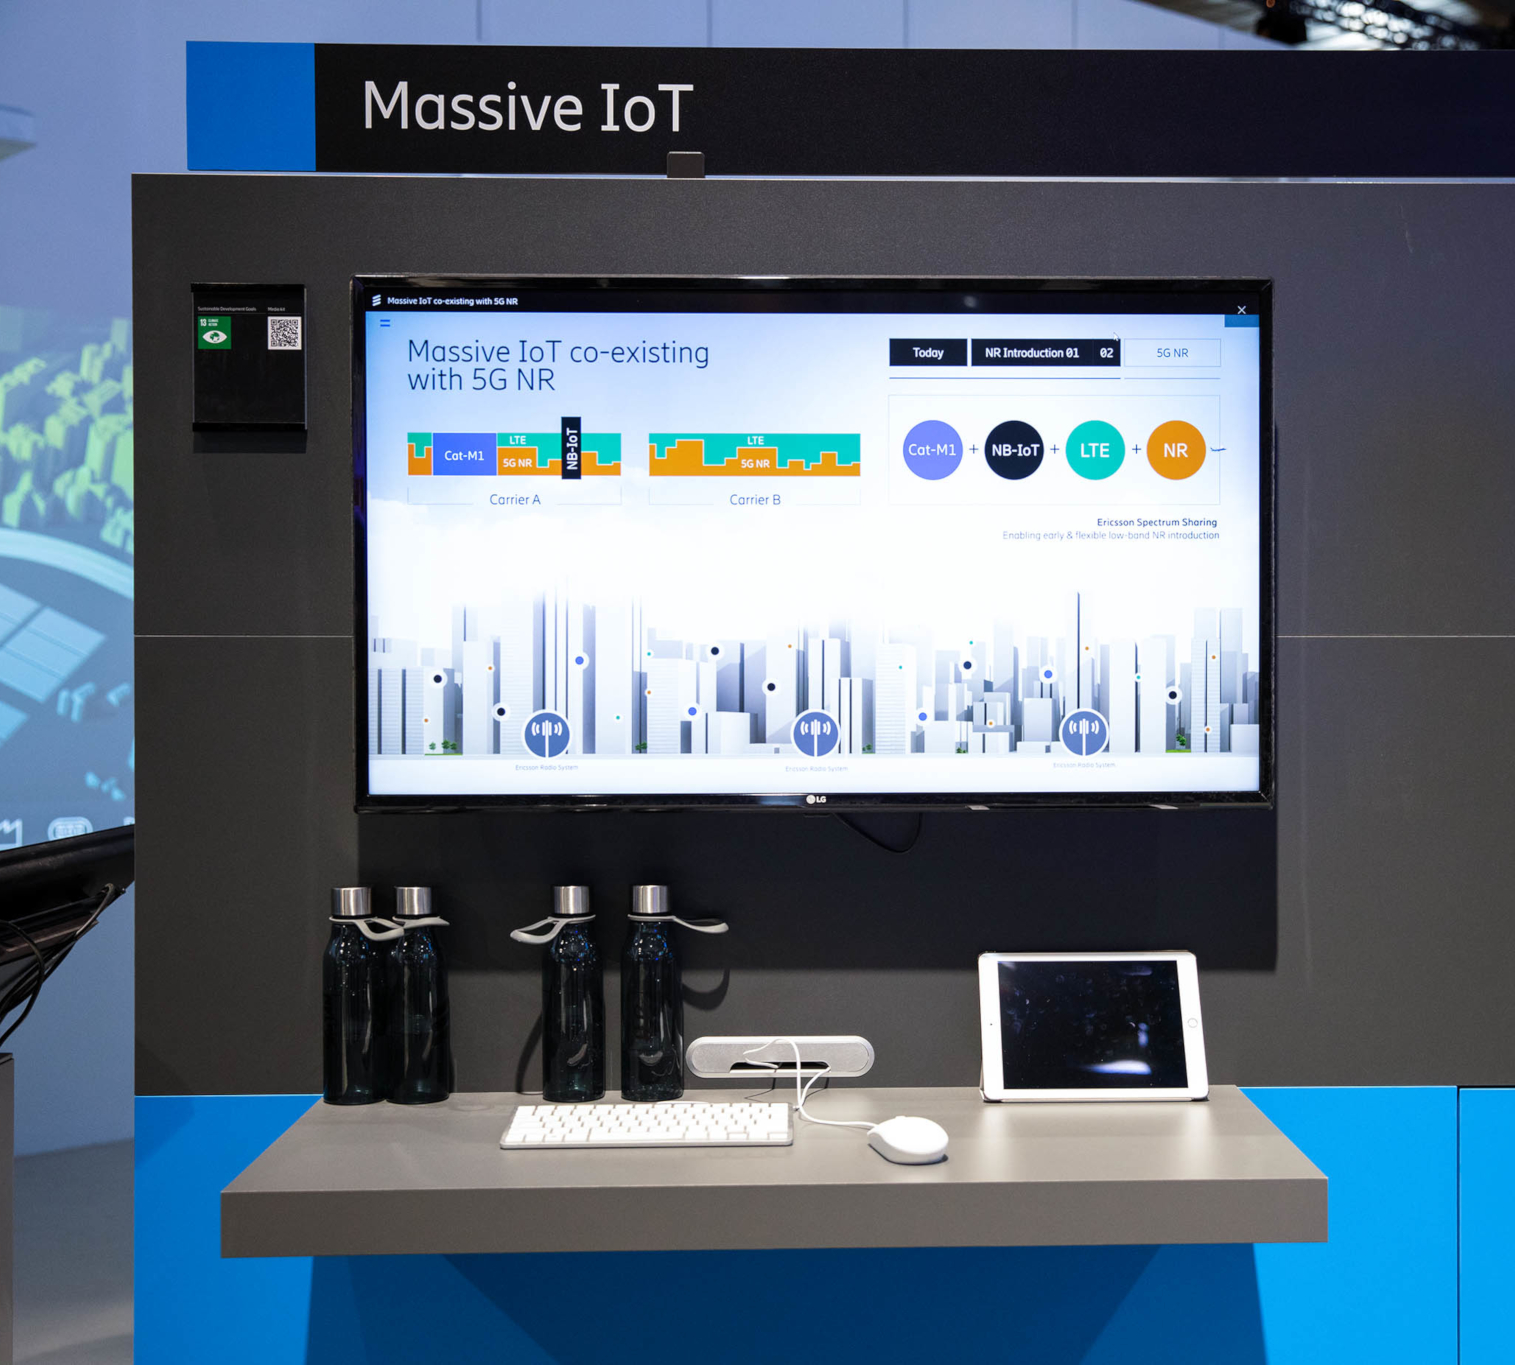 Ericsson Massive IoT Technology co-existing with 5G NR presented at MWC 2019 (credits: Ericsson / Flickr Creative Commons Attribution-NonCommercial-NoDerivs 2.0 Generic (CC BY-NC-ND 2.0))